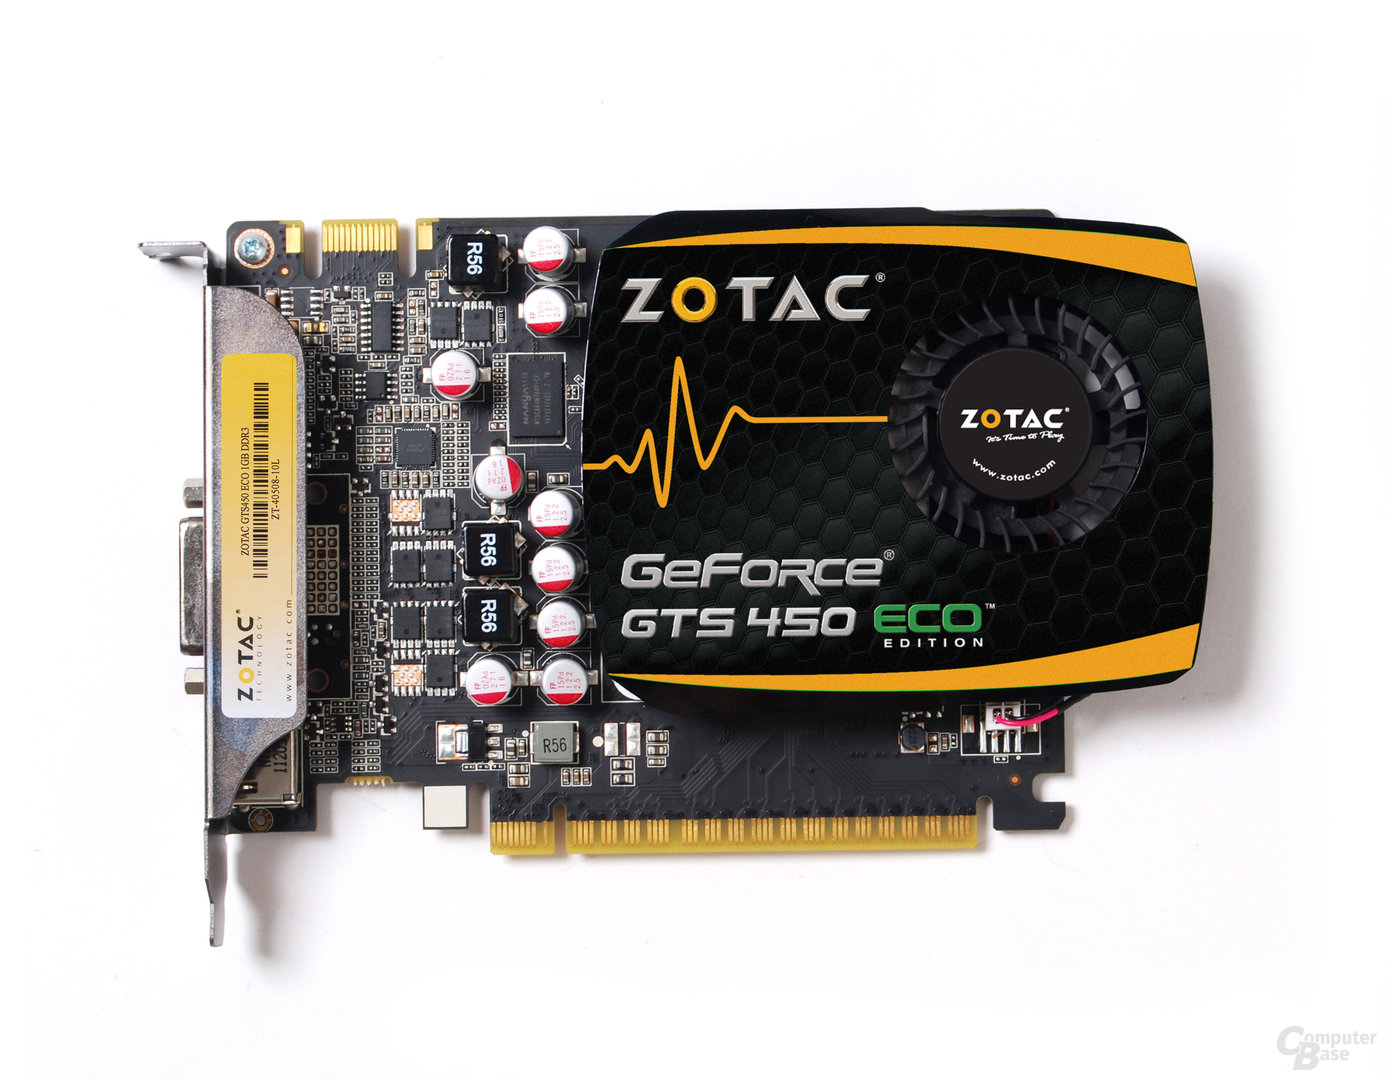 Zotac GeForce GTS 450 Eco Edition